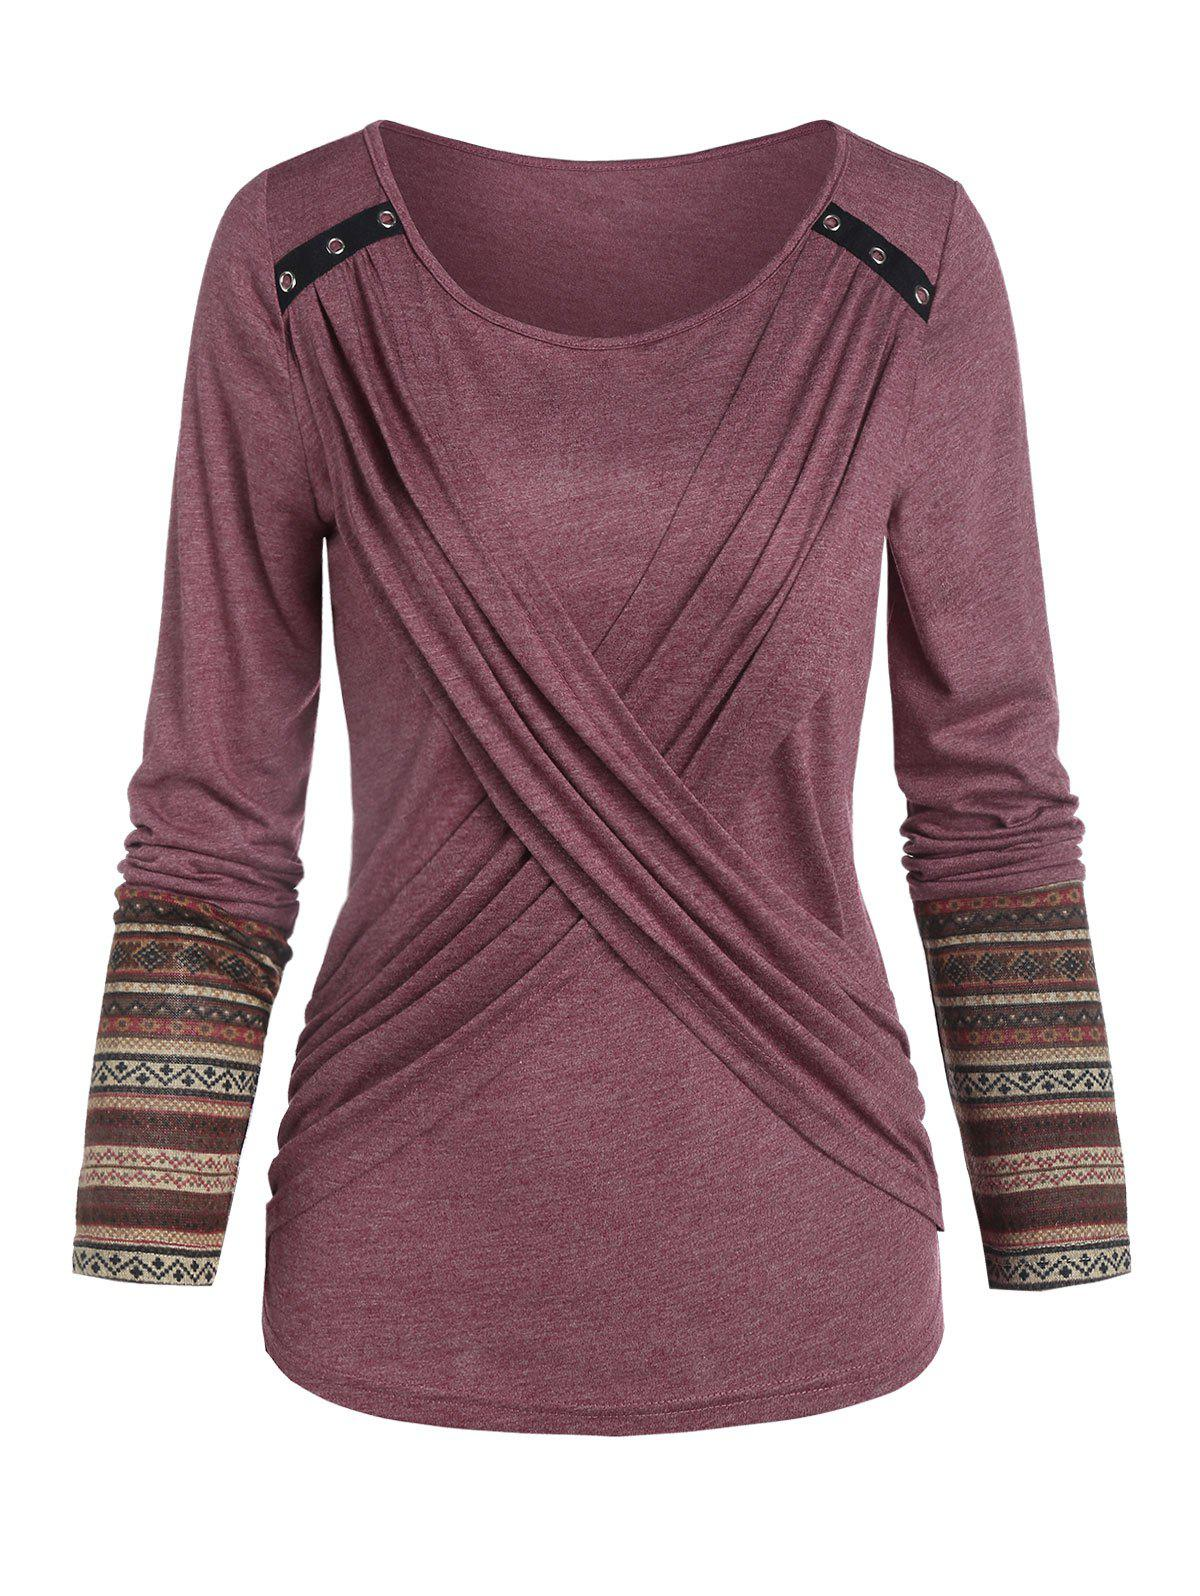 Ethnic Striped Front Crisscross Casual T Shirt - RED WINE 3XL